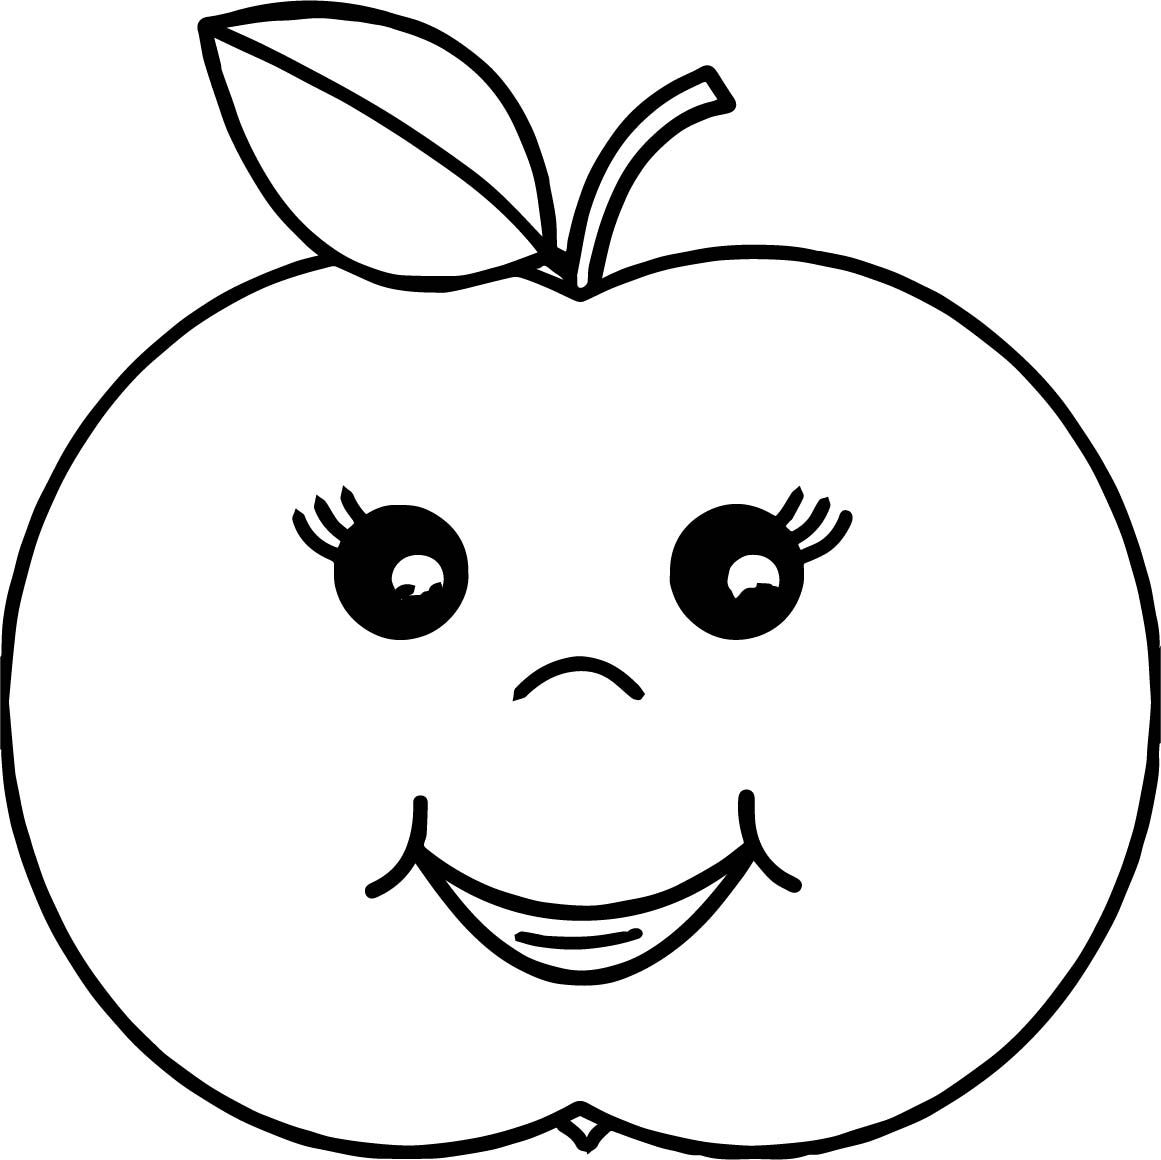 Cool Cartoon Girl Apple Coloring Page Apple Coloring Pages Apple Coloring Candy Coloring Pages